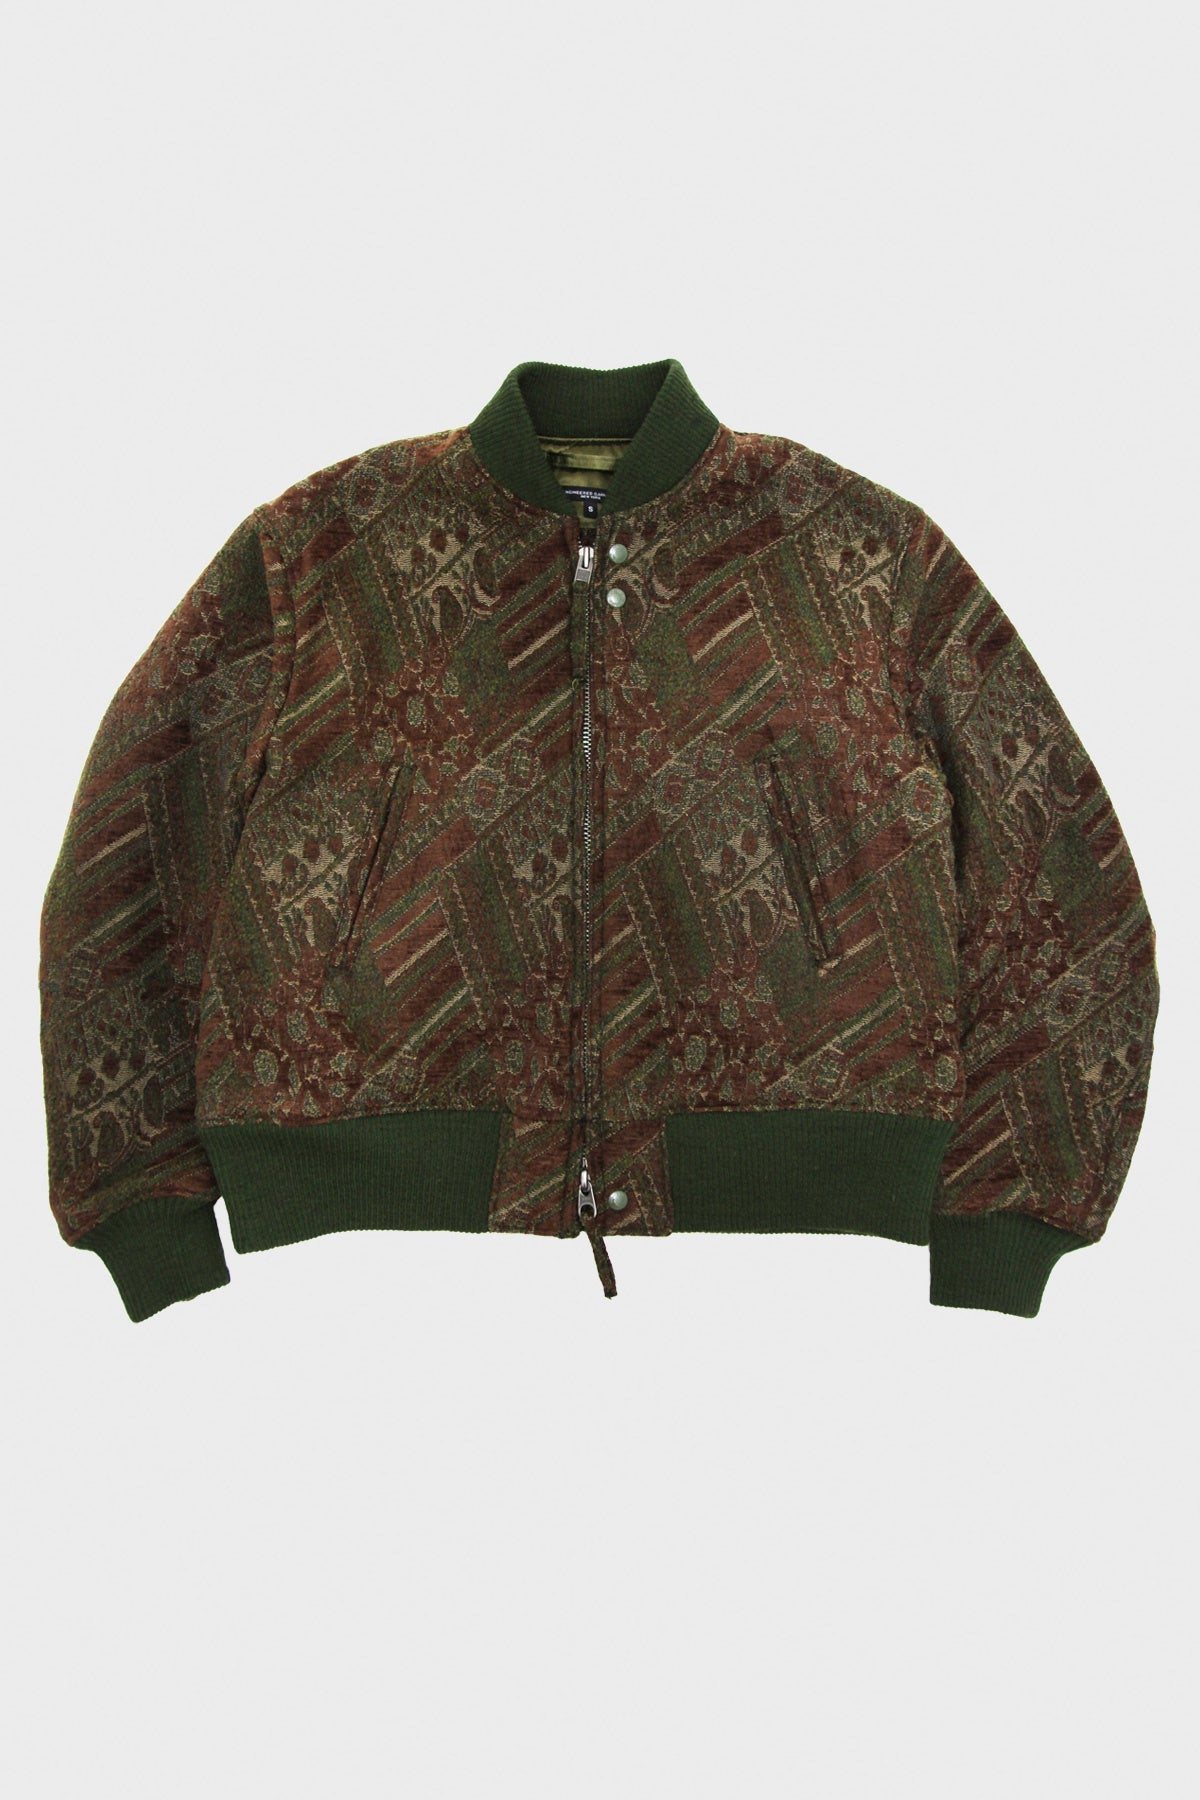 Engineered Garments - SVR Jacket - Olive/Brown Chenille - Canoe Club